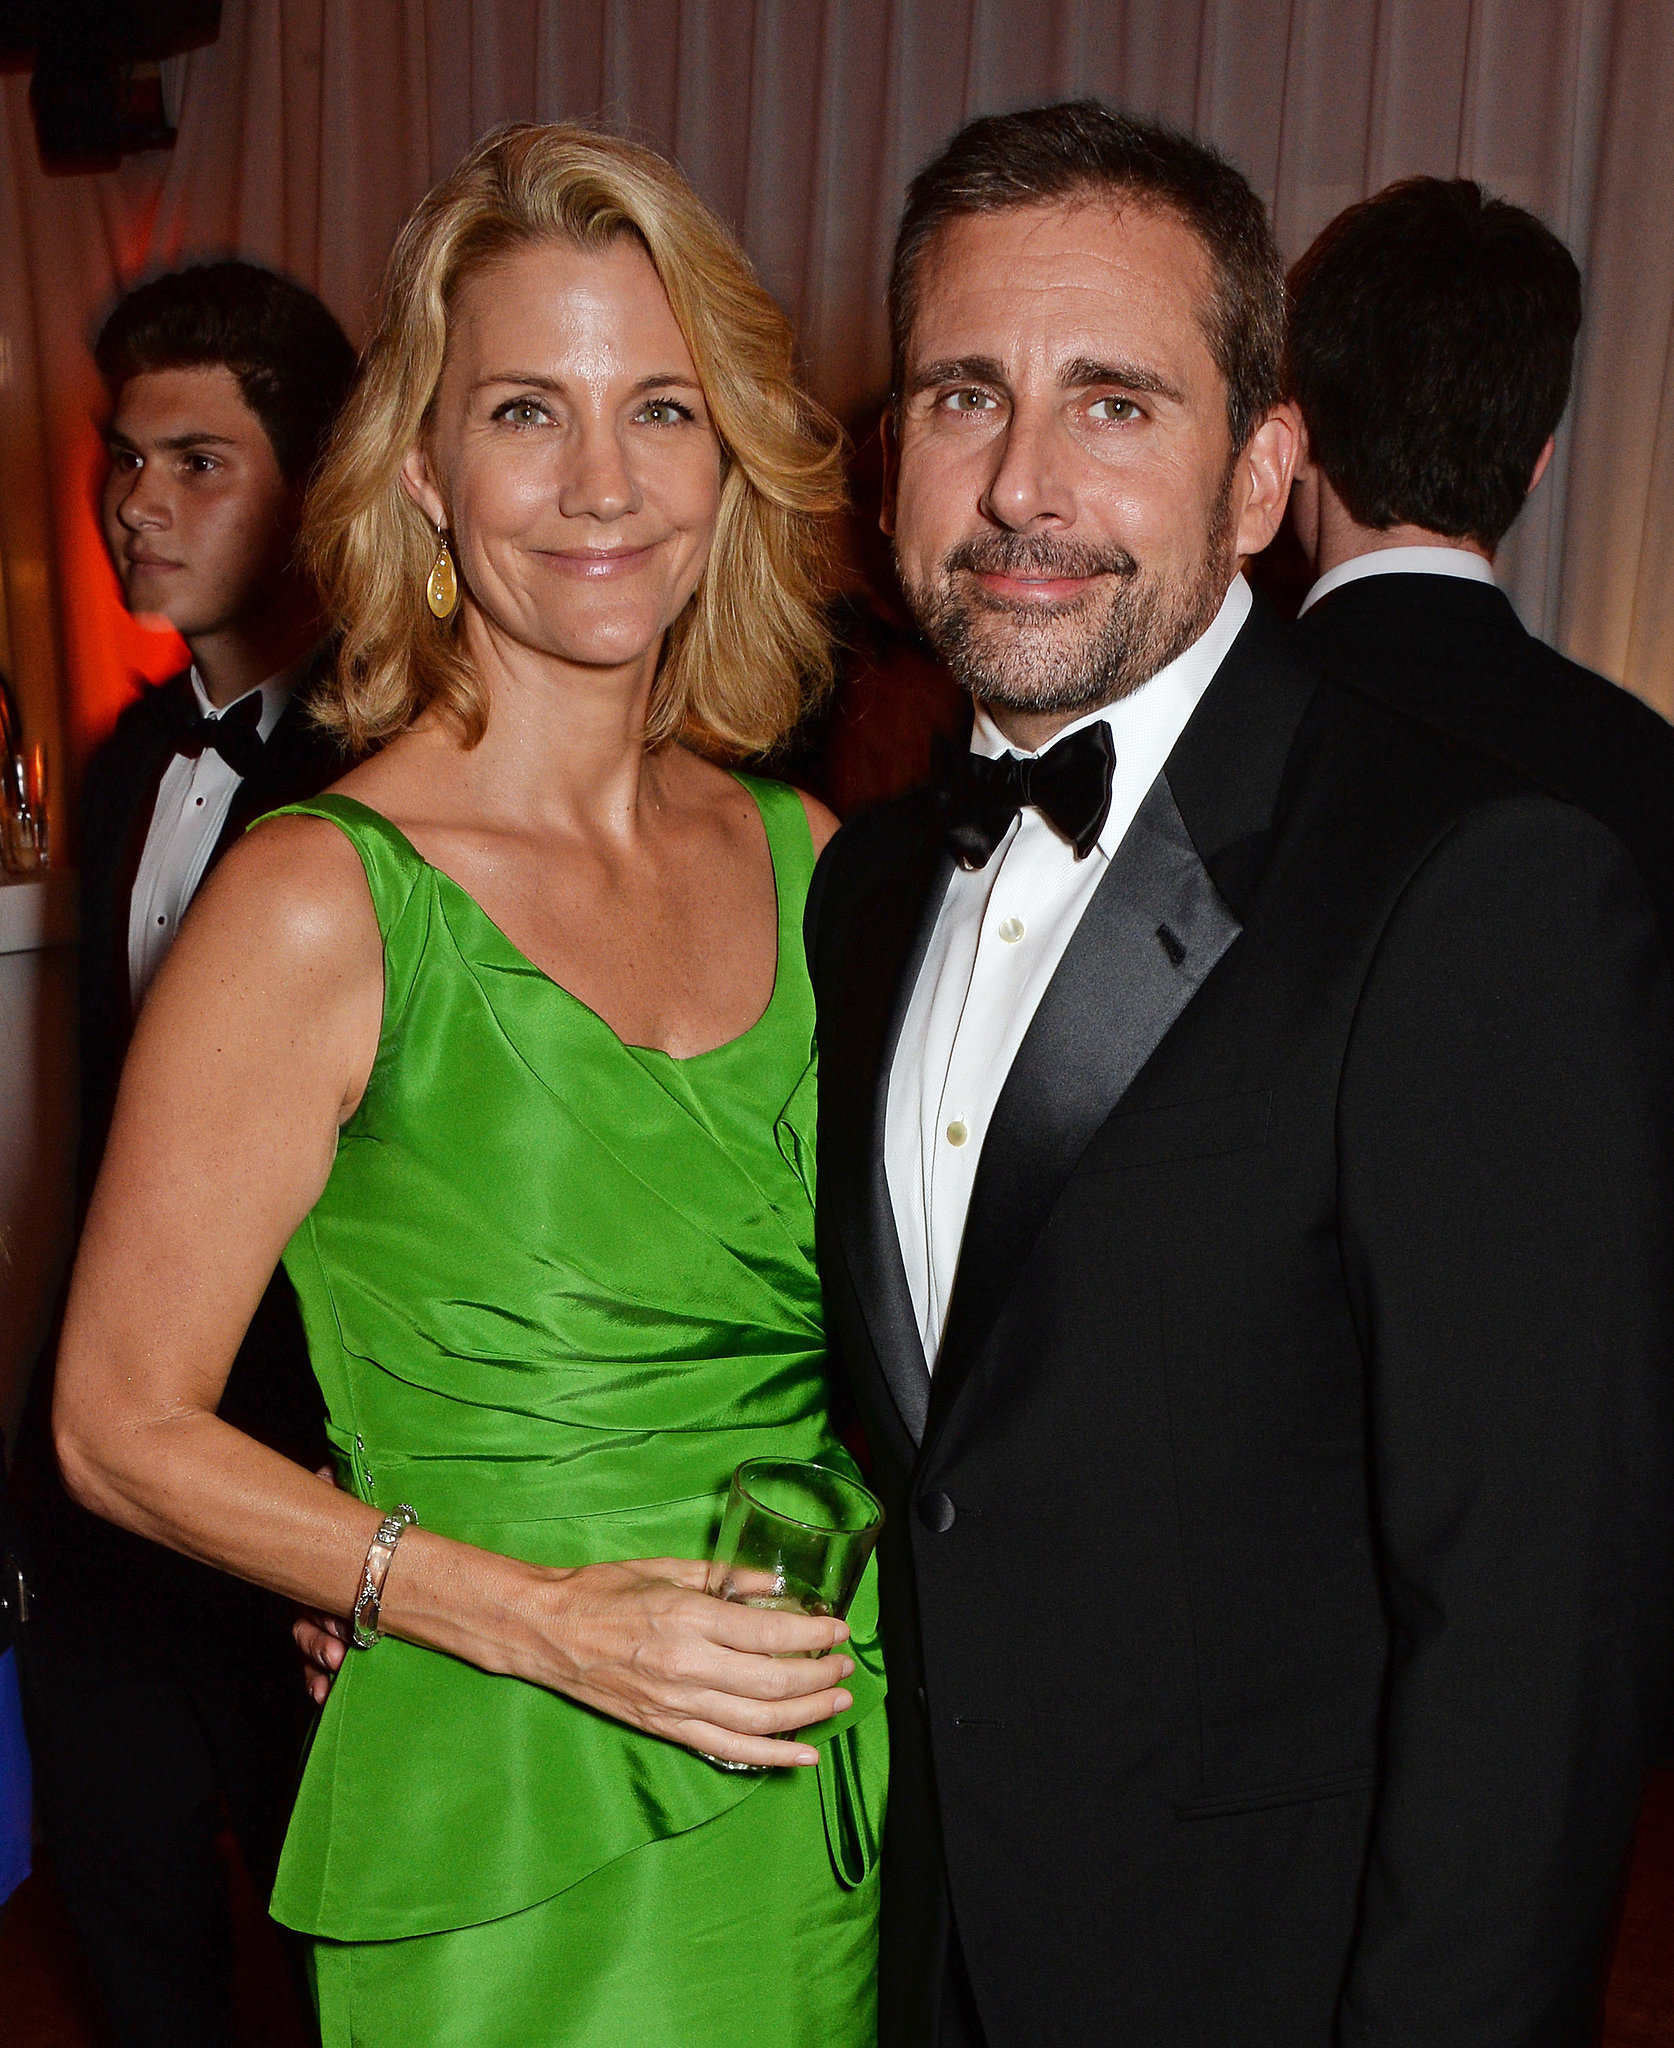 Nancy Carell Alchetron The Free Social Encyclopedia Married to actor/writer steve carell, who she met while both were writer/performers in the famed second city comedy troupe in chicago, il. alchetron